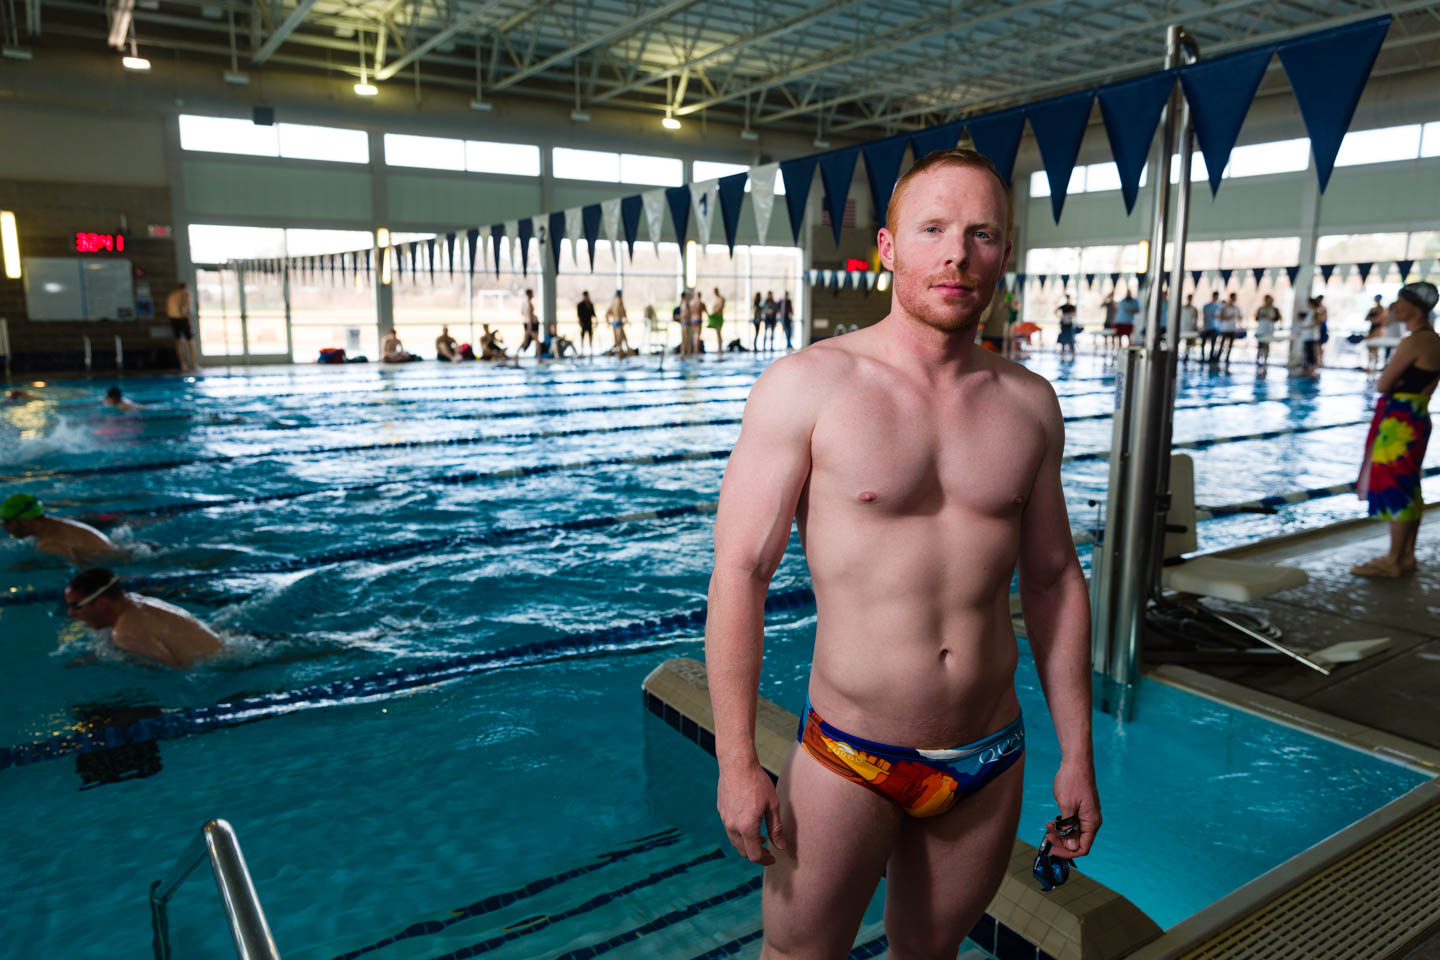 Male swimmer posing for the camera by the pool